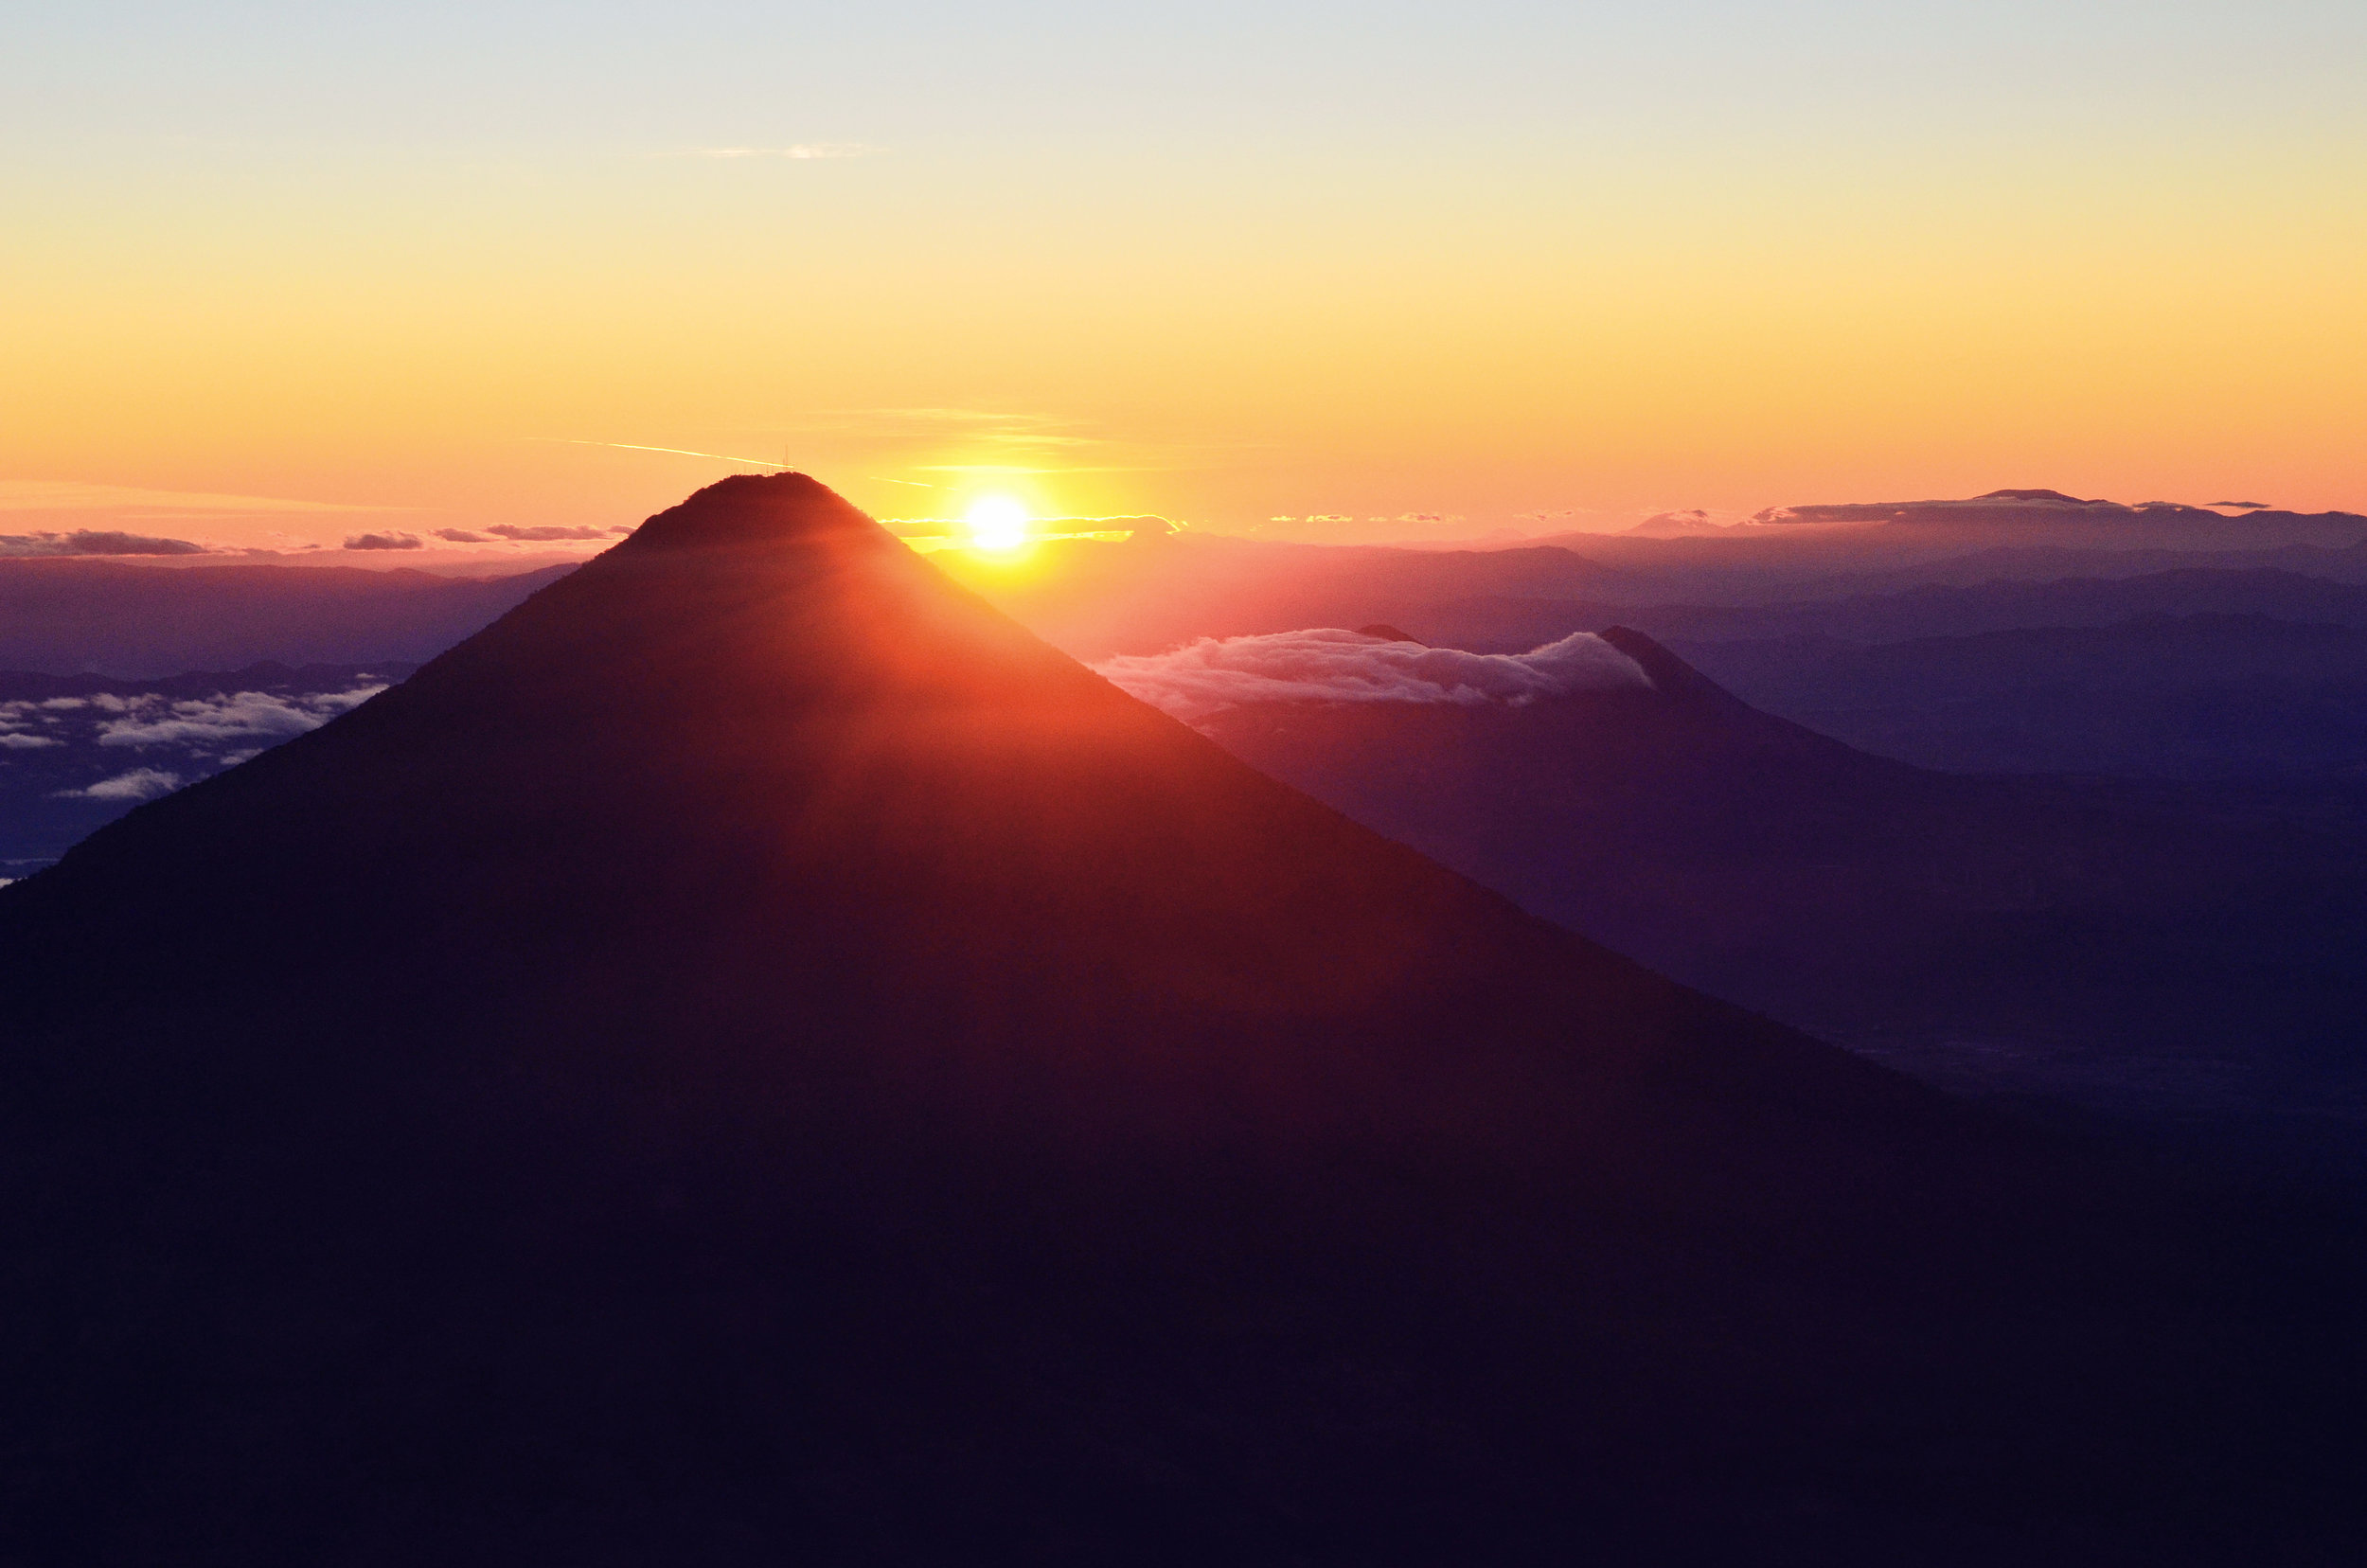 The sunrise over a chain of volcanoes